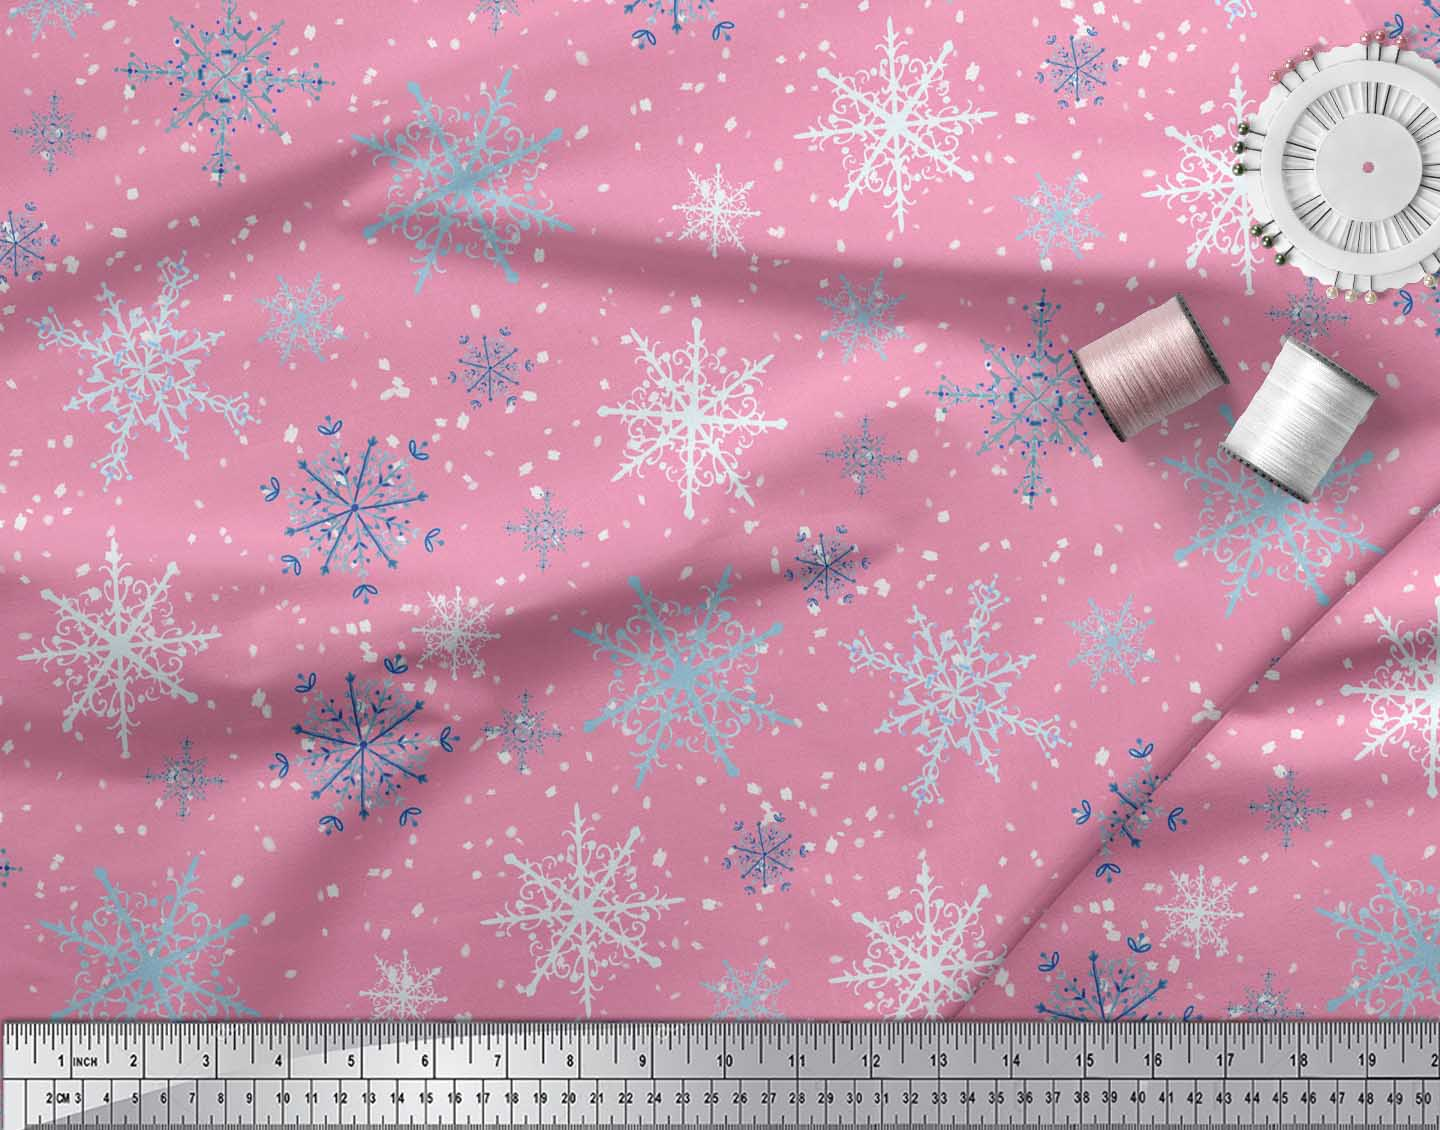 Soimoi-Pink-Cotton-Poplin-Fabric-Snow-Flakes-amp-Star-Printed-Craft-bzS thumbnail 4